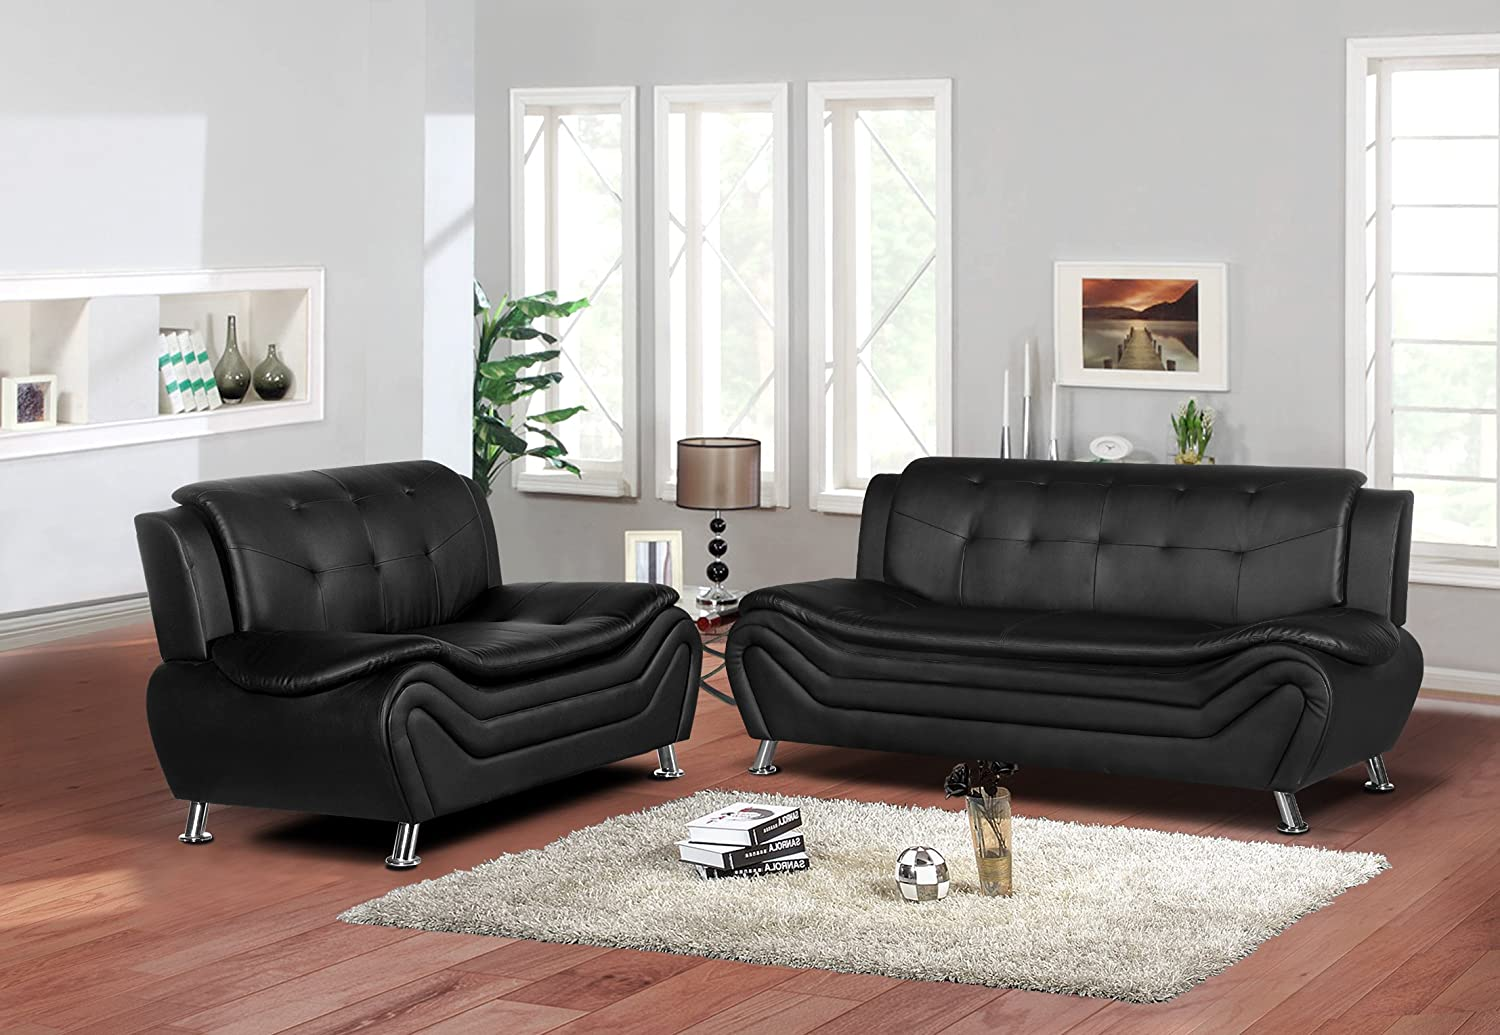 amazon com container furniture direct s5410 s l arul leather air rh amazon com Mid Century Modern Sofa Reproductions Contemporary Leather Sofa